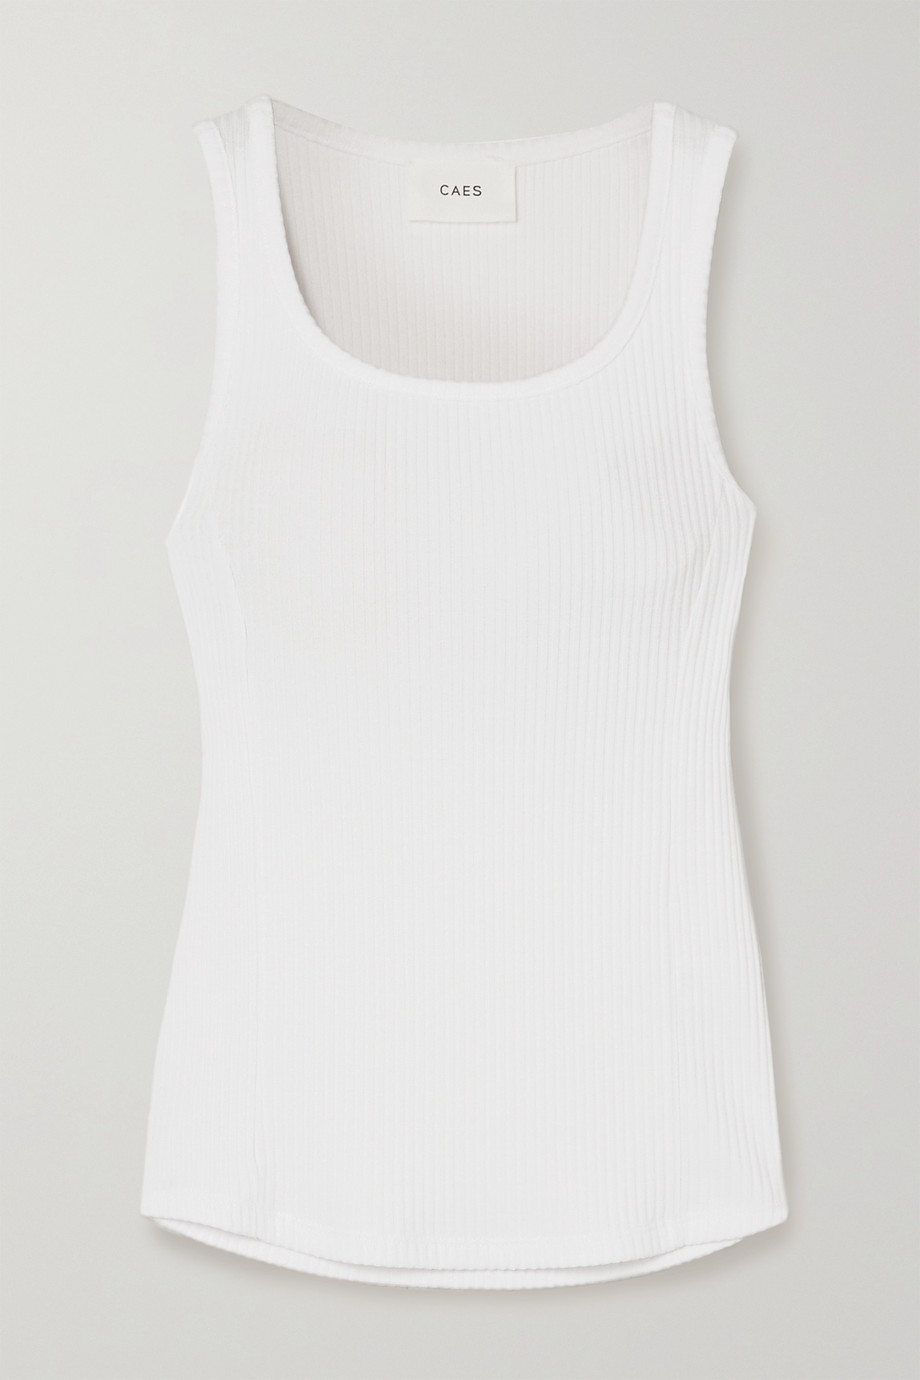 CAES + NET SUSTAIN ribbed stretch-jersey tank